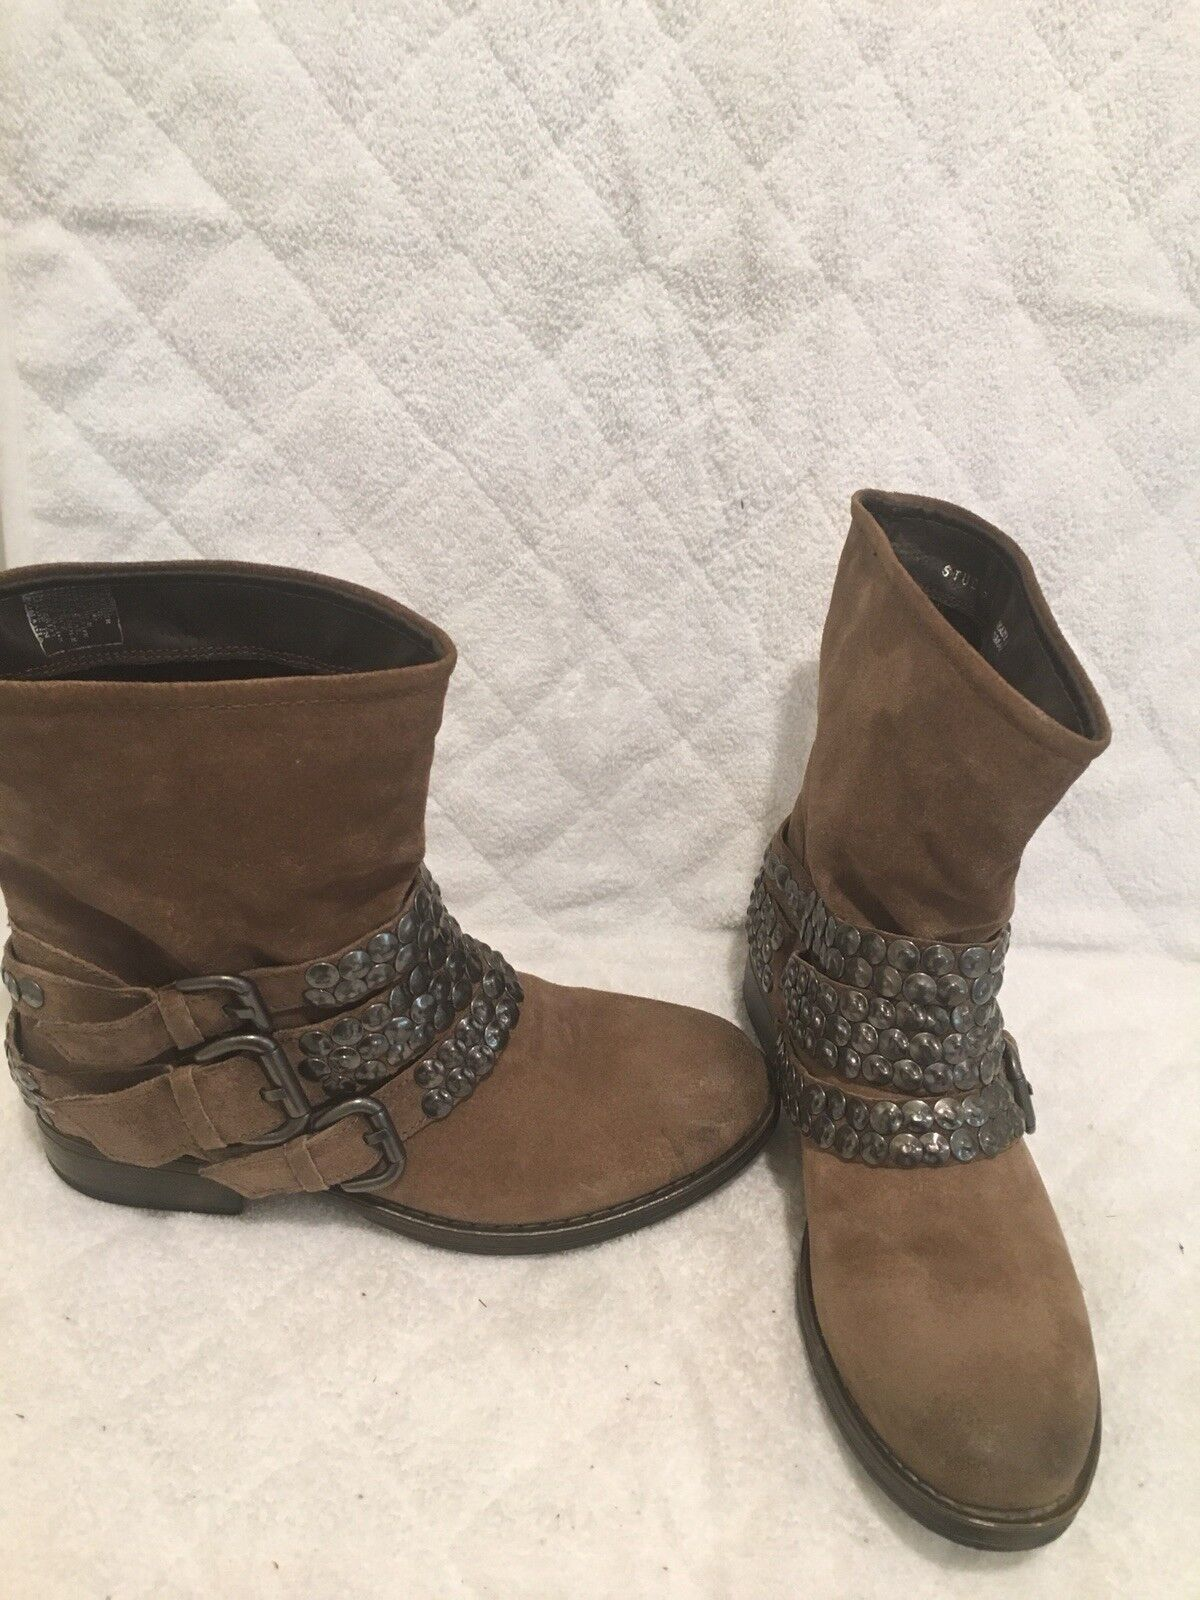 STEVE MADDEN STUDDED MOTO BOOT SUEDE LIGHT BROWEN  SIZE 39 ANKLE BOOT